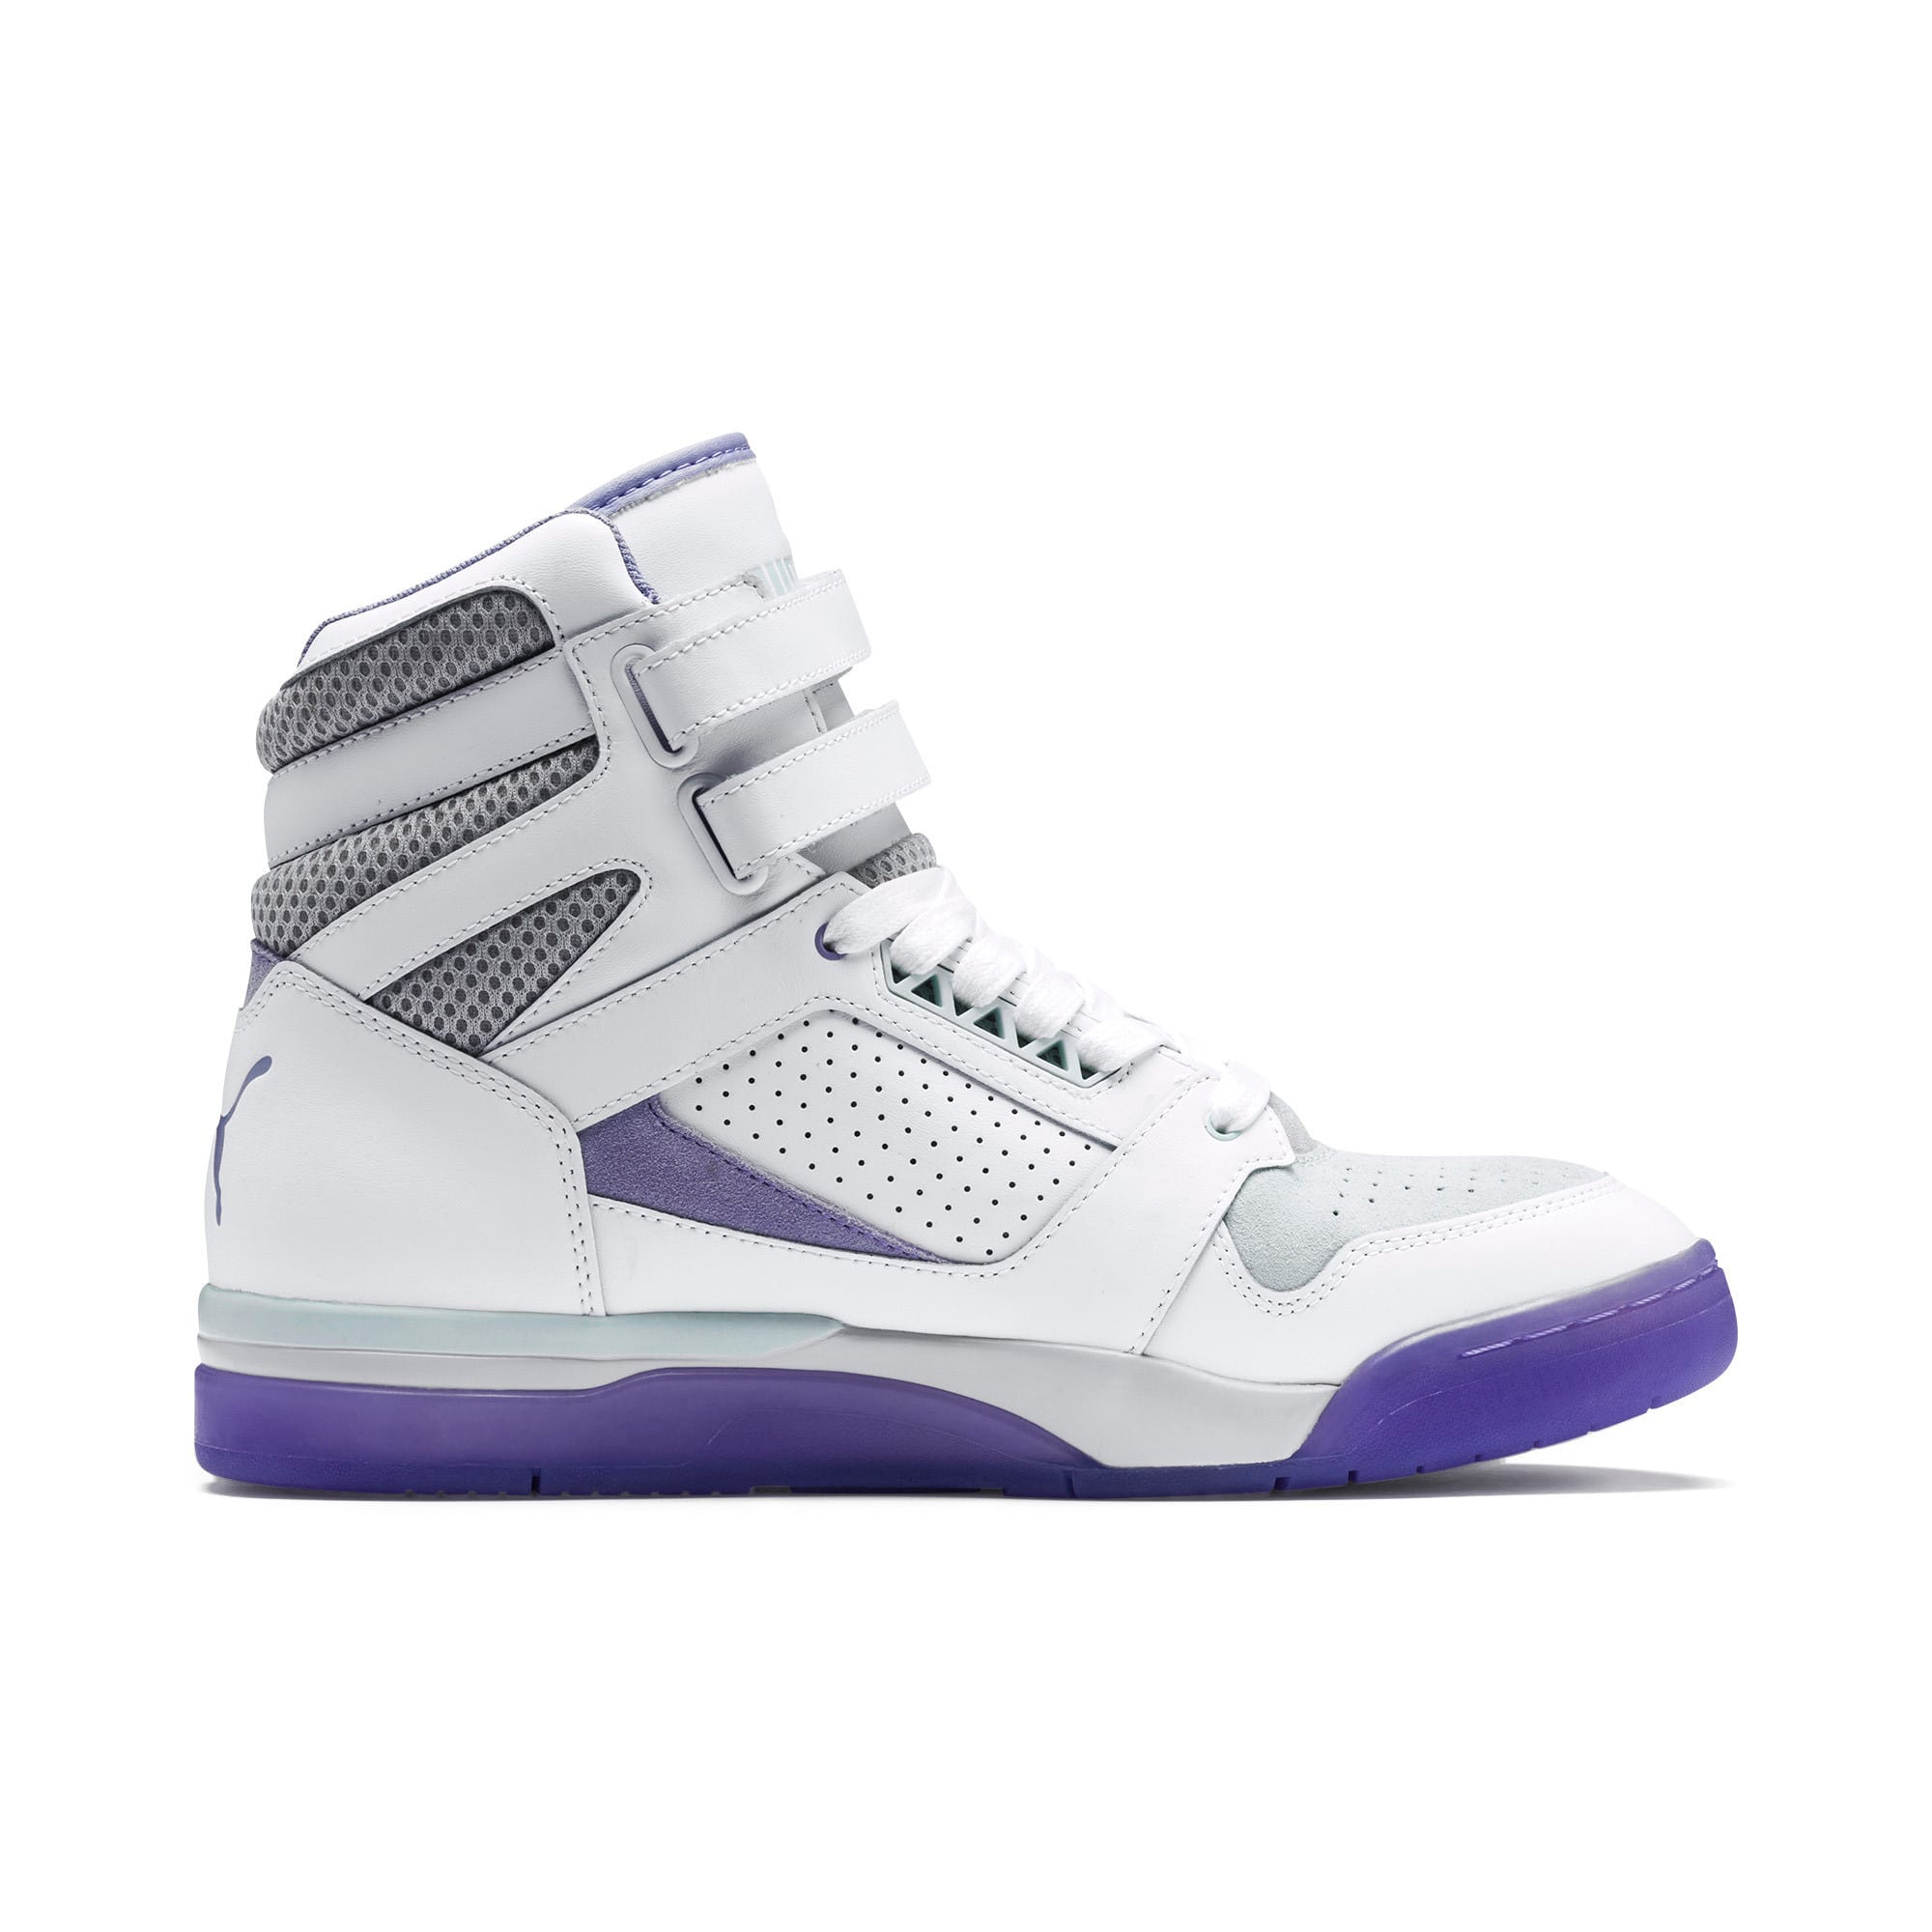 Thumbnail 5 of Palace Guard Mid Easter Sneakers, PWht-Dandelion-Prism Violet, medium